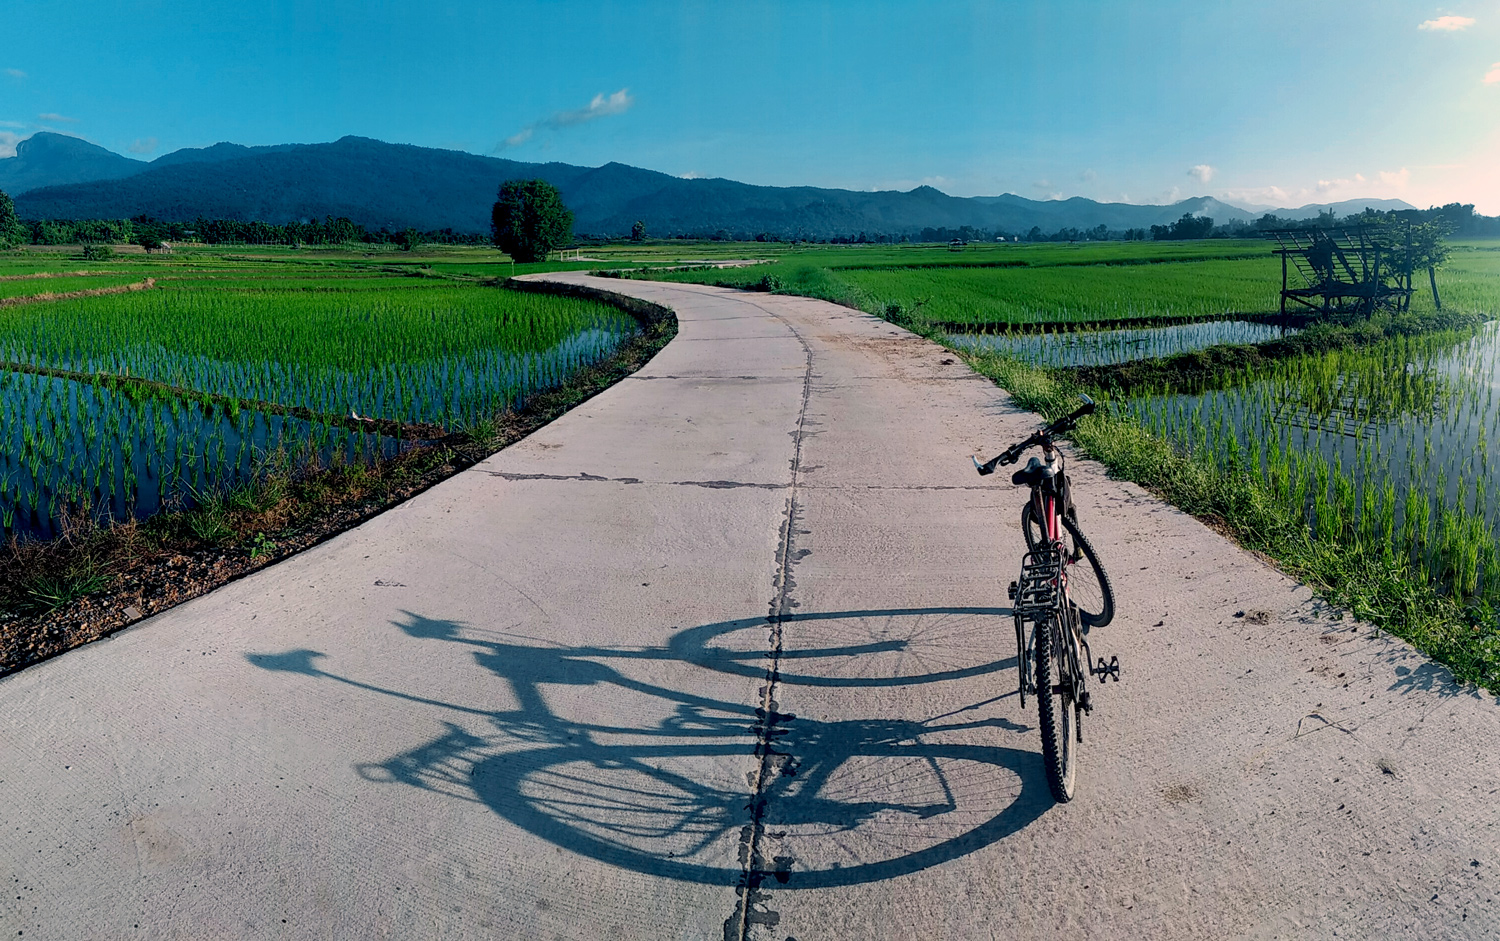 Bicycle on a road in the rice field - comfort zone